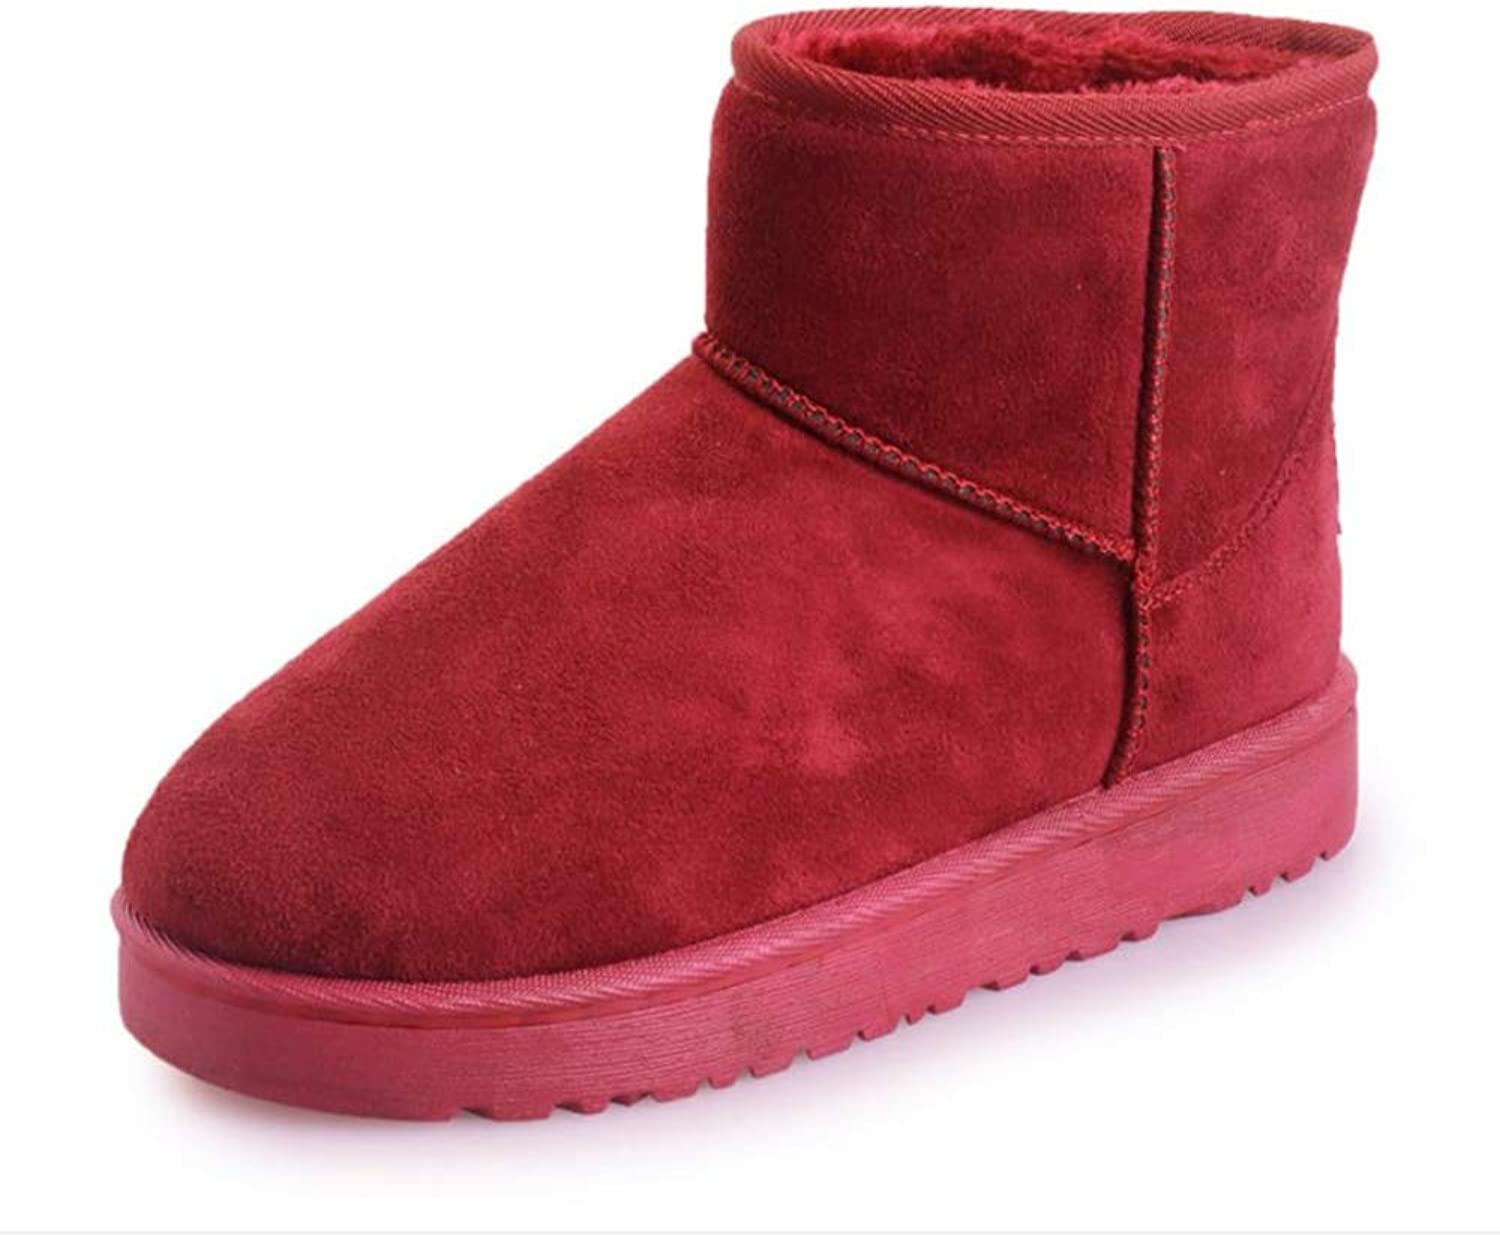 Gusha Trend Women's shoes Autumn and Winter Snow Boots Warm Boots